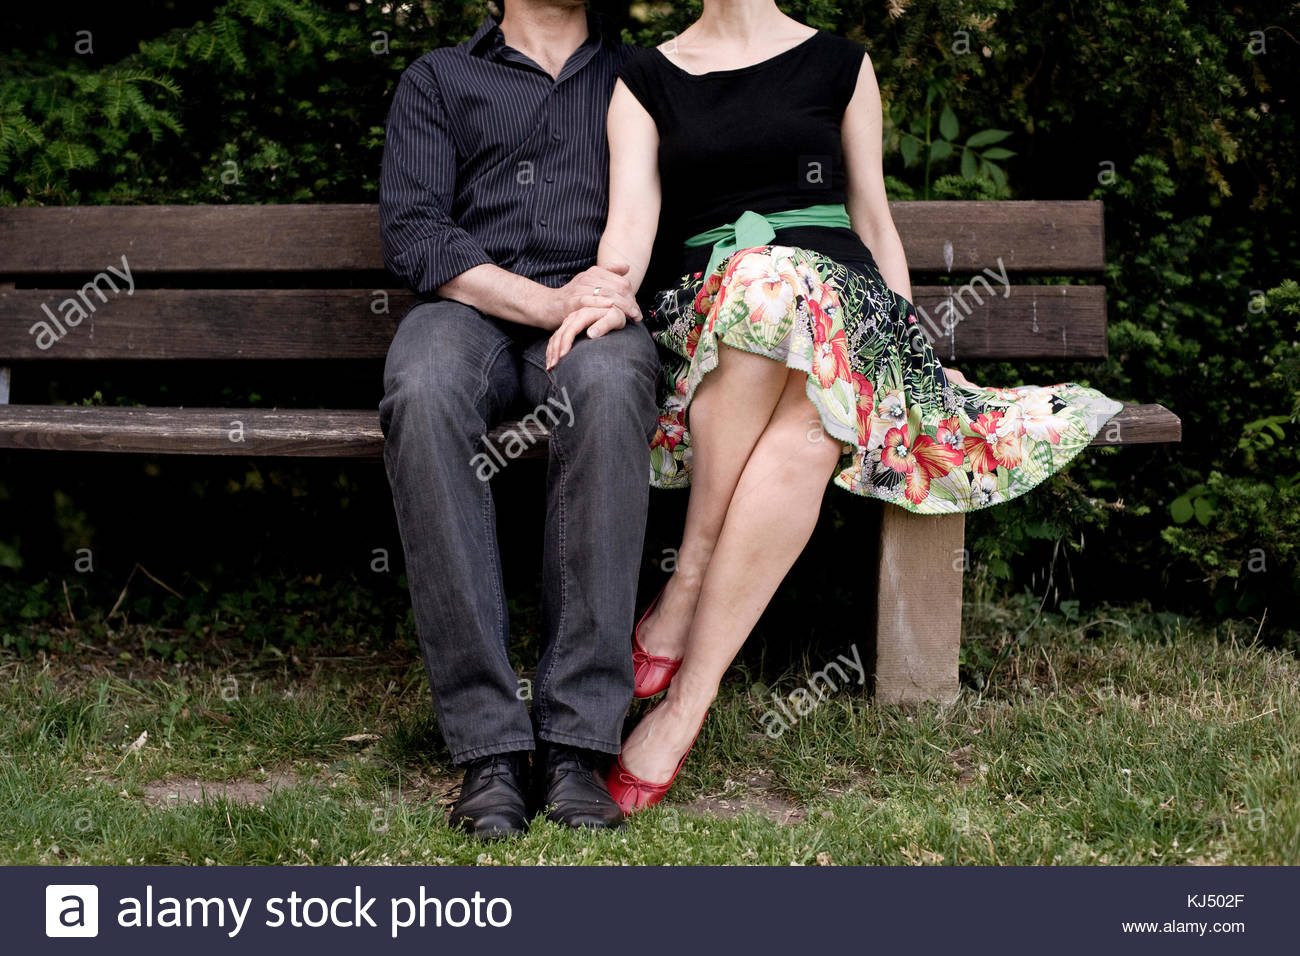 Elegant couple holding hands sitting on a bench - Stock Image